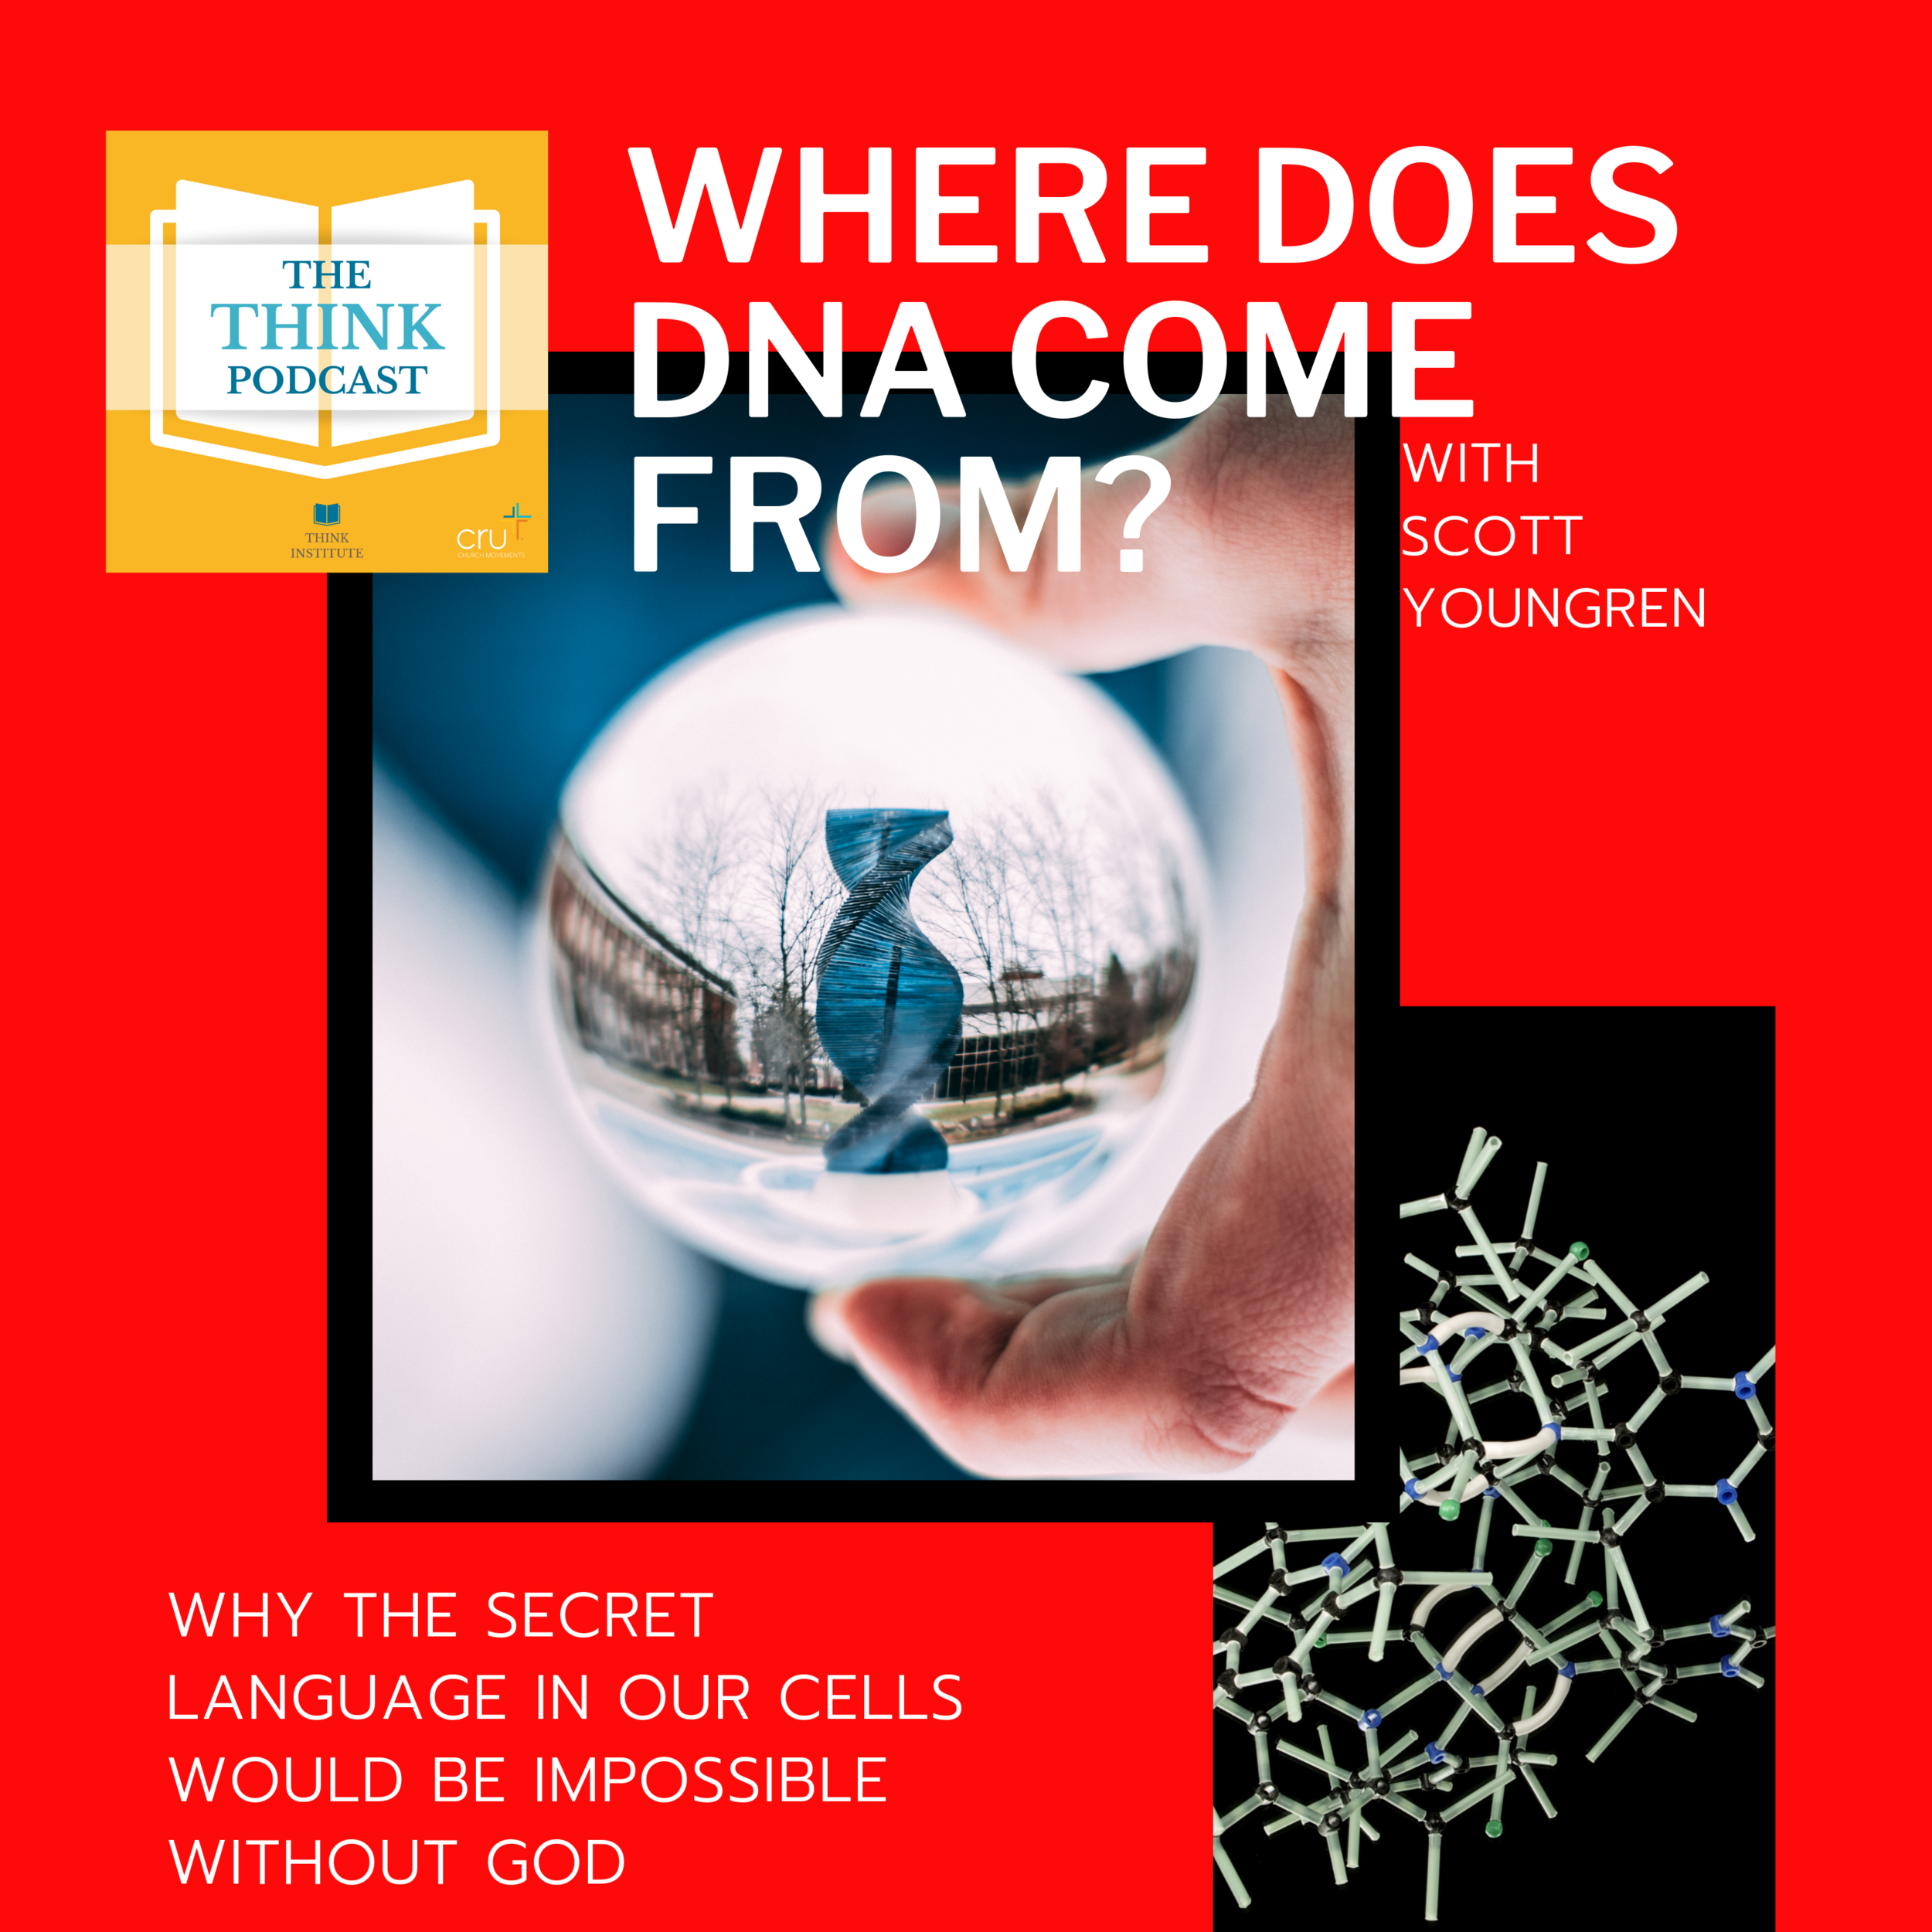 Where does DNA come from?